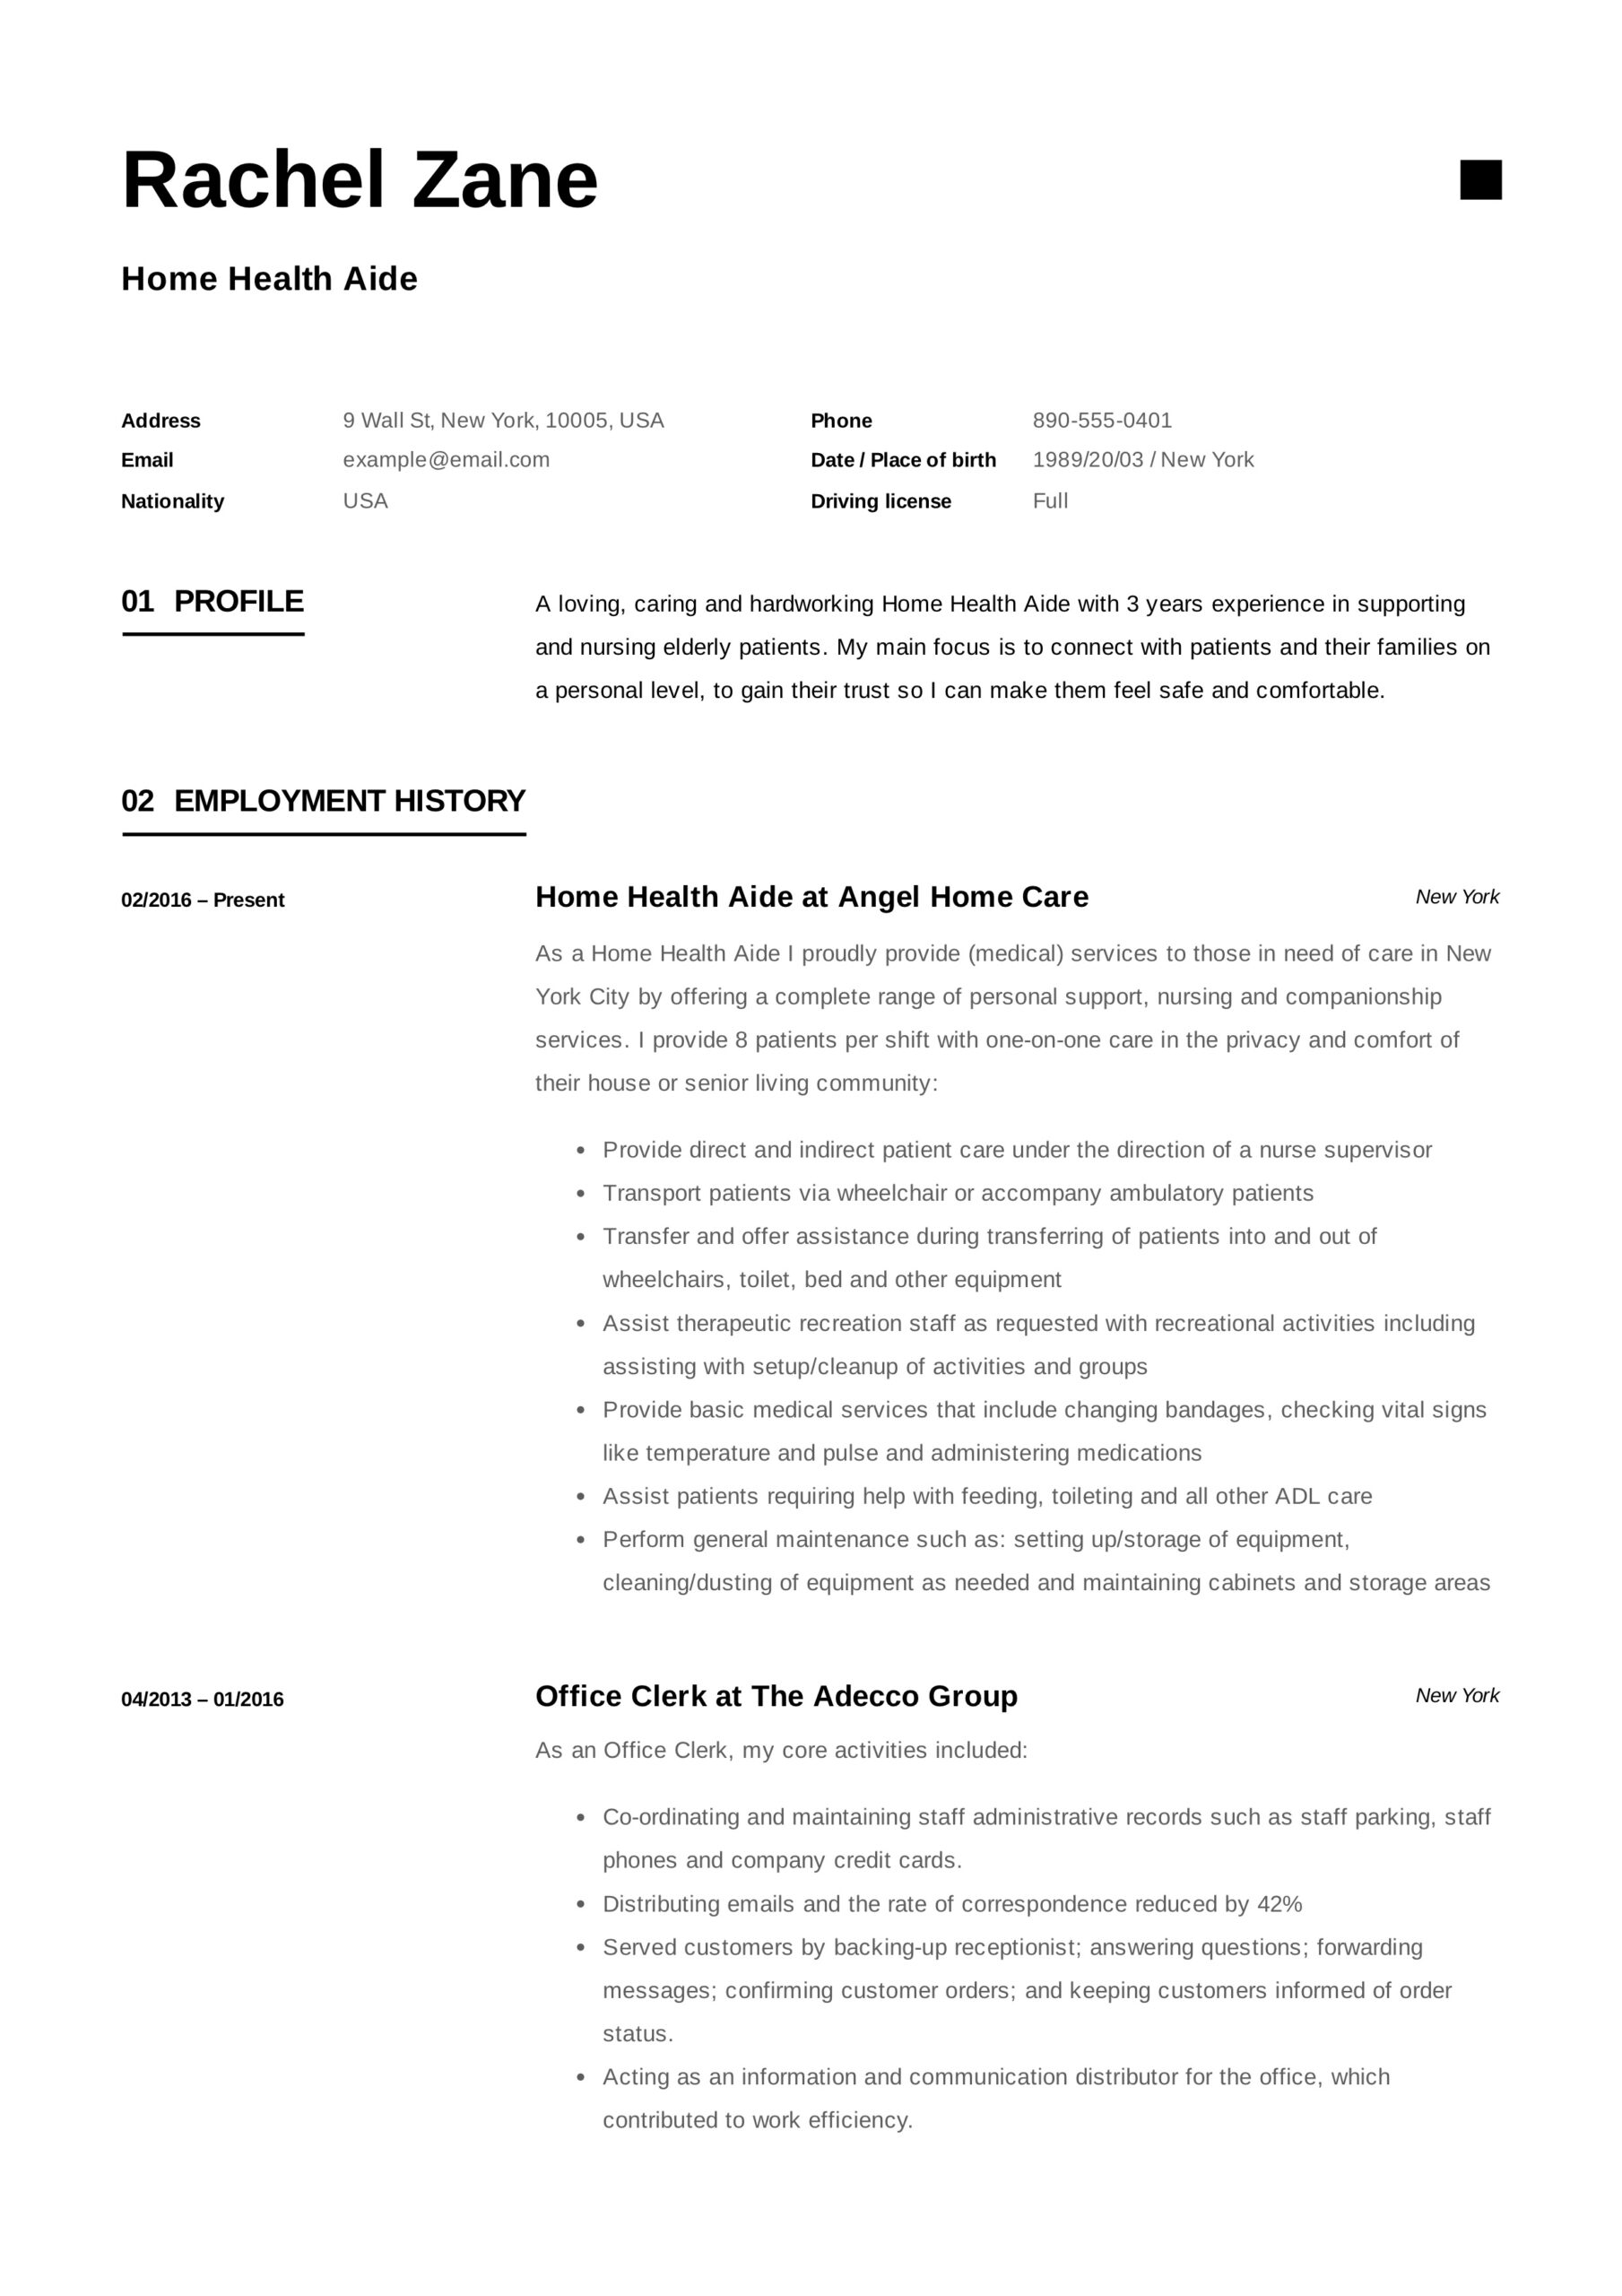 home health aide resume sample writing guide samples pdf care healt college education on Resume Home Health Care Resume